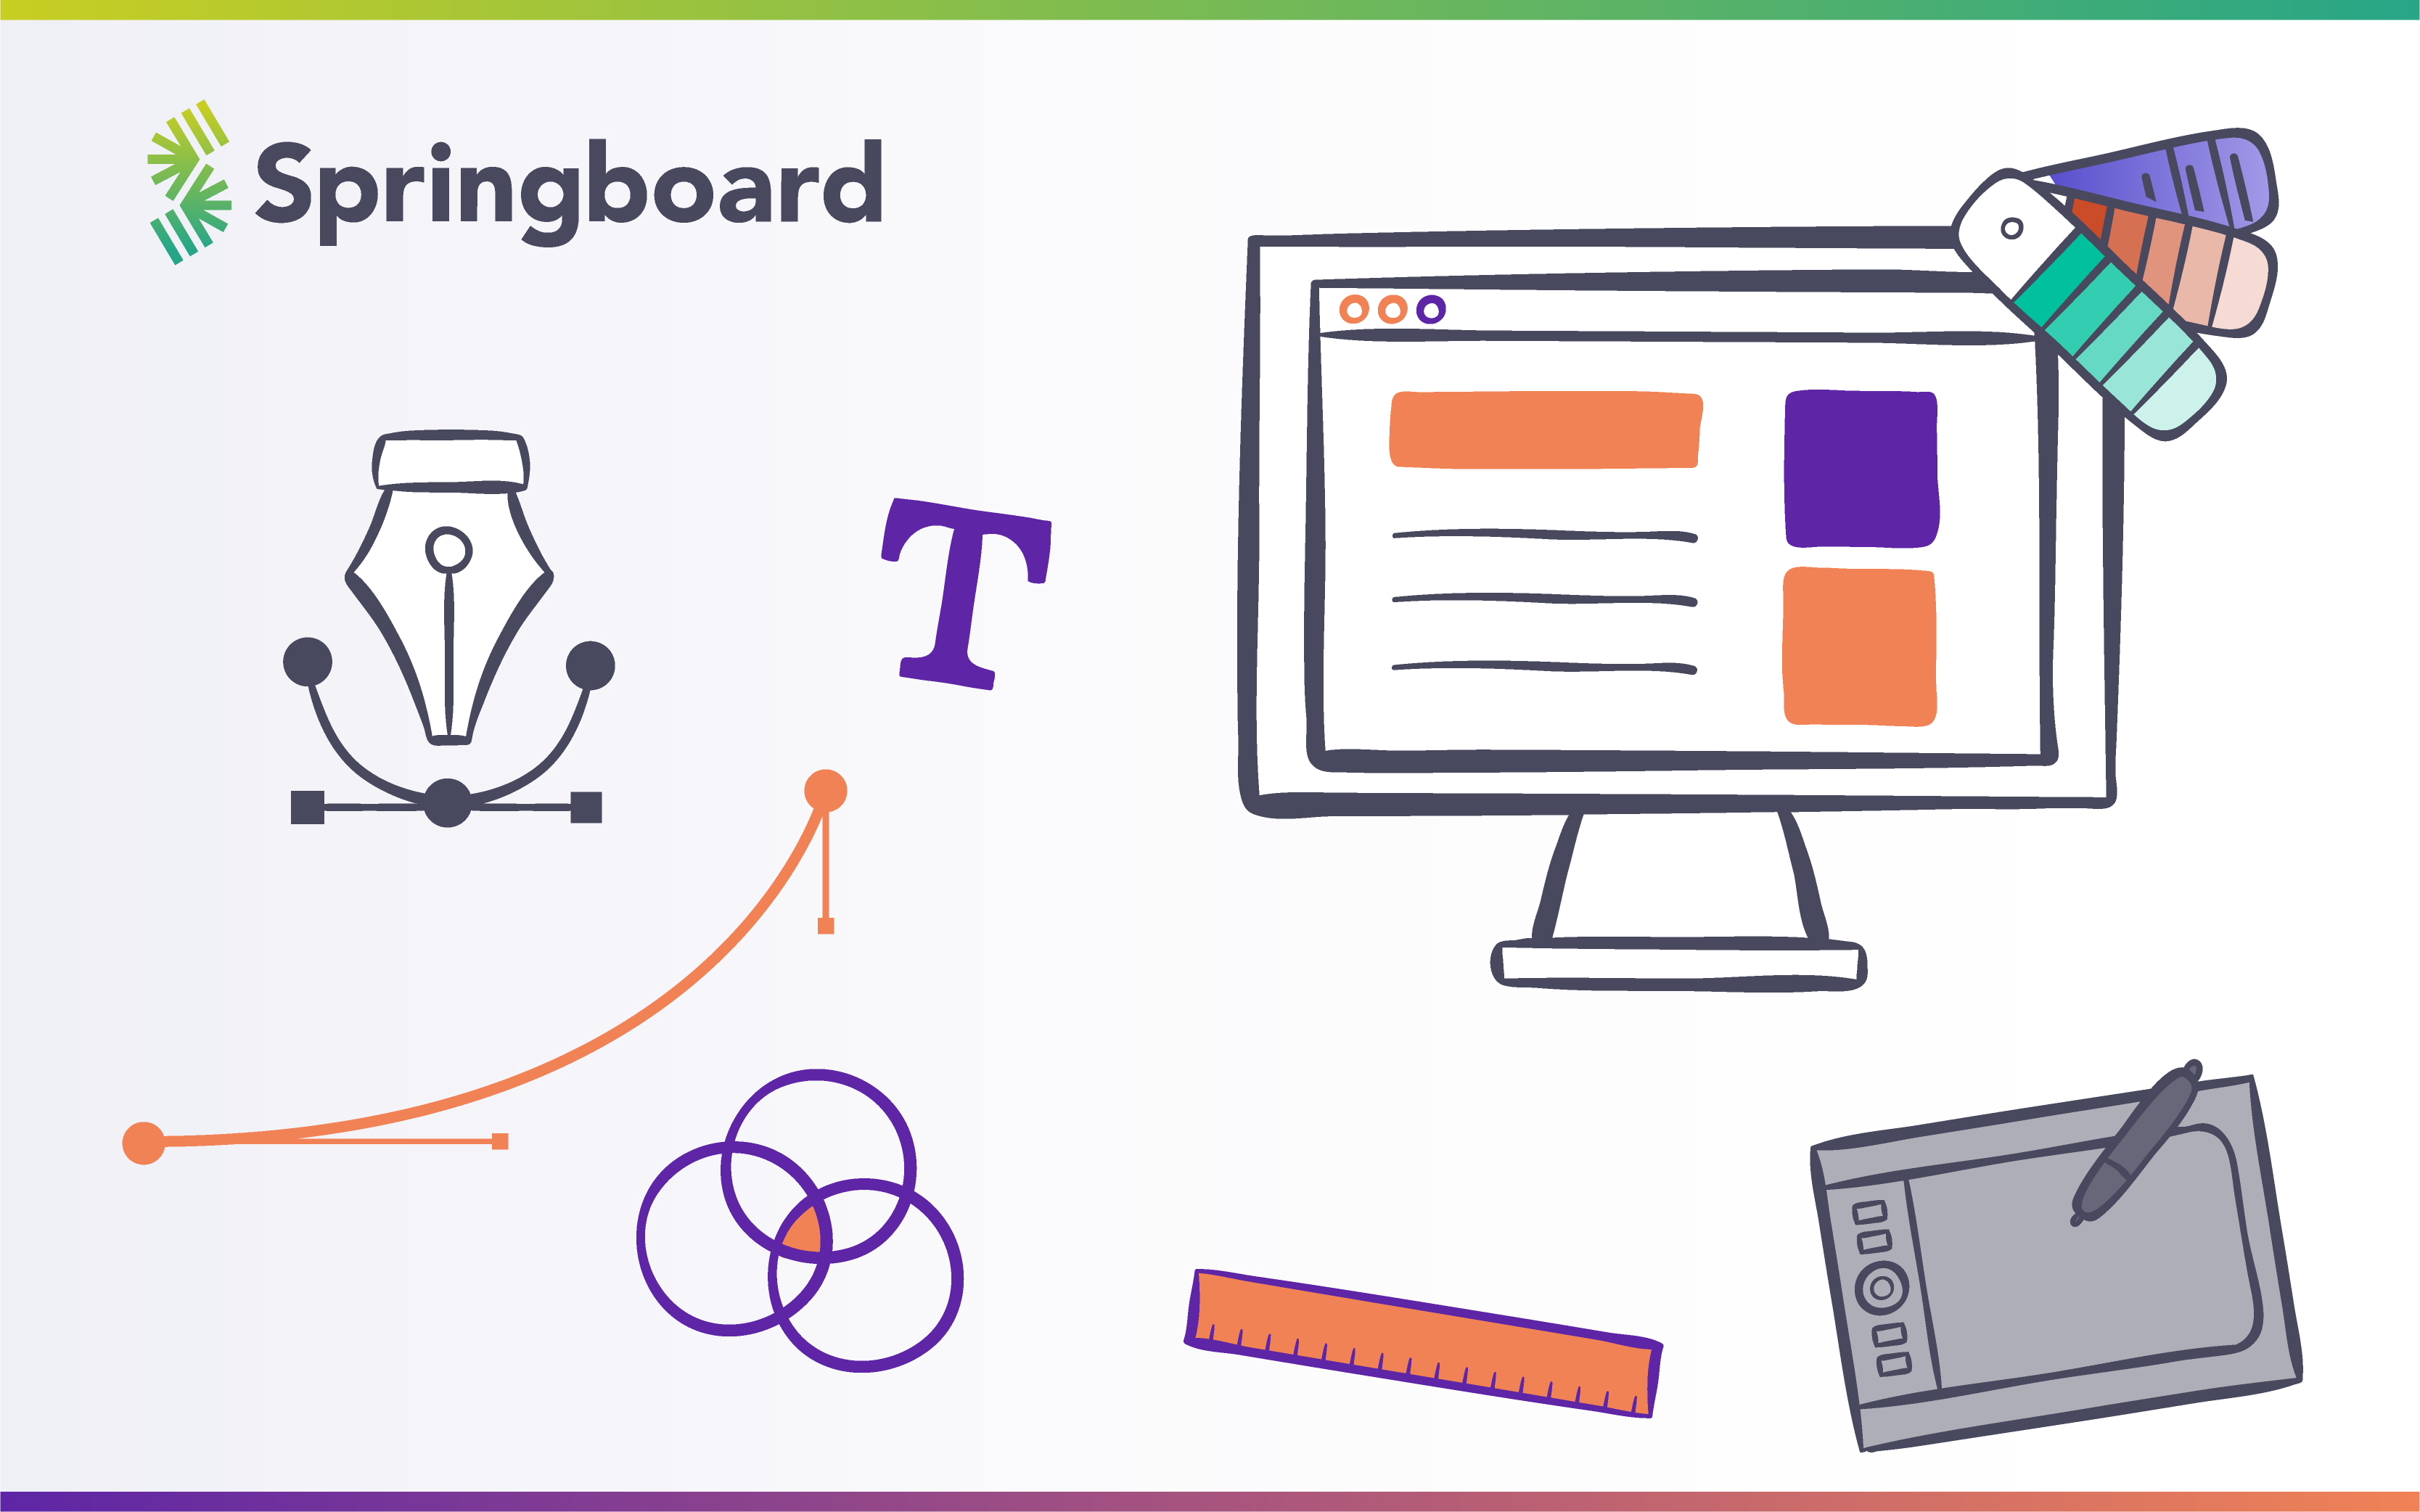 design tools and materials with Springboard logo